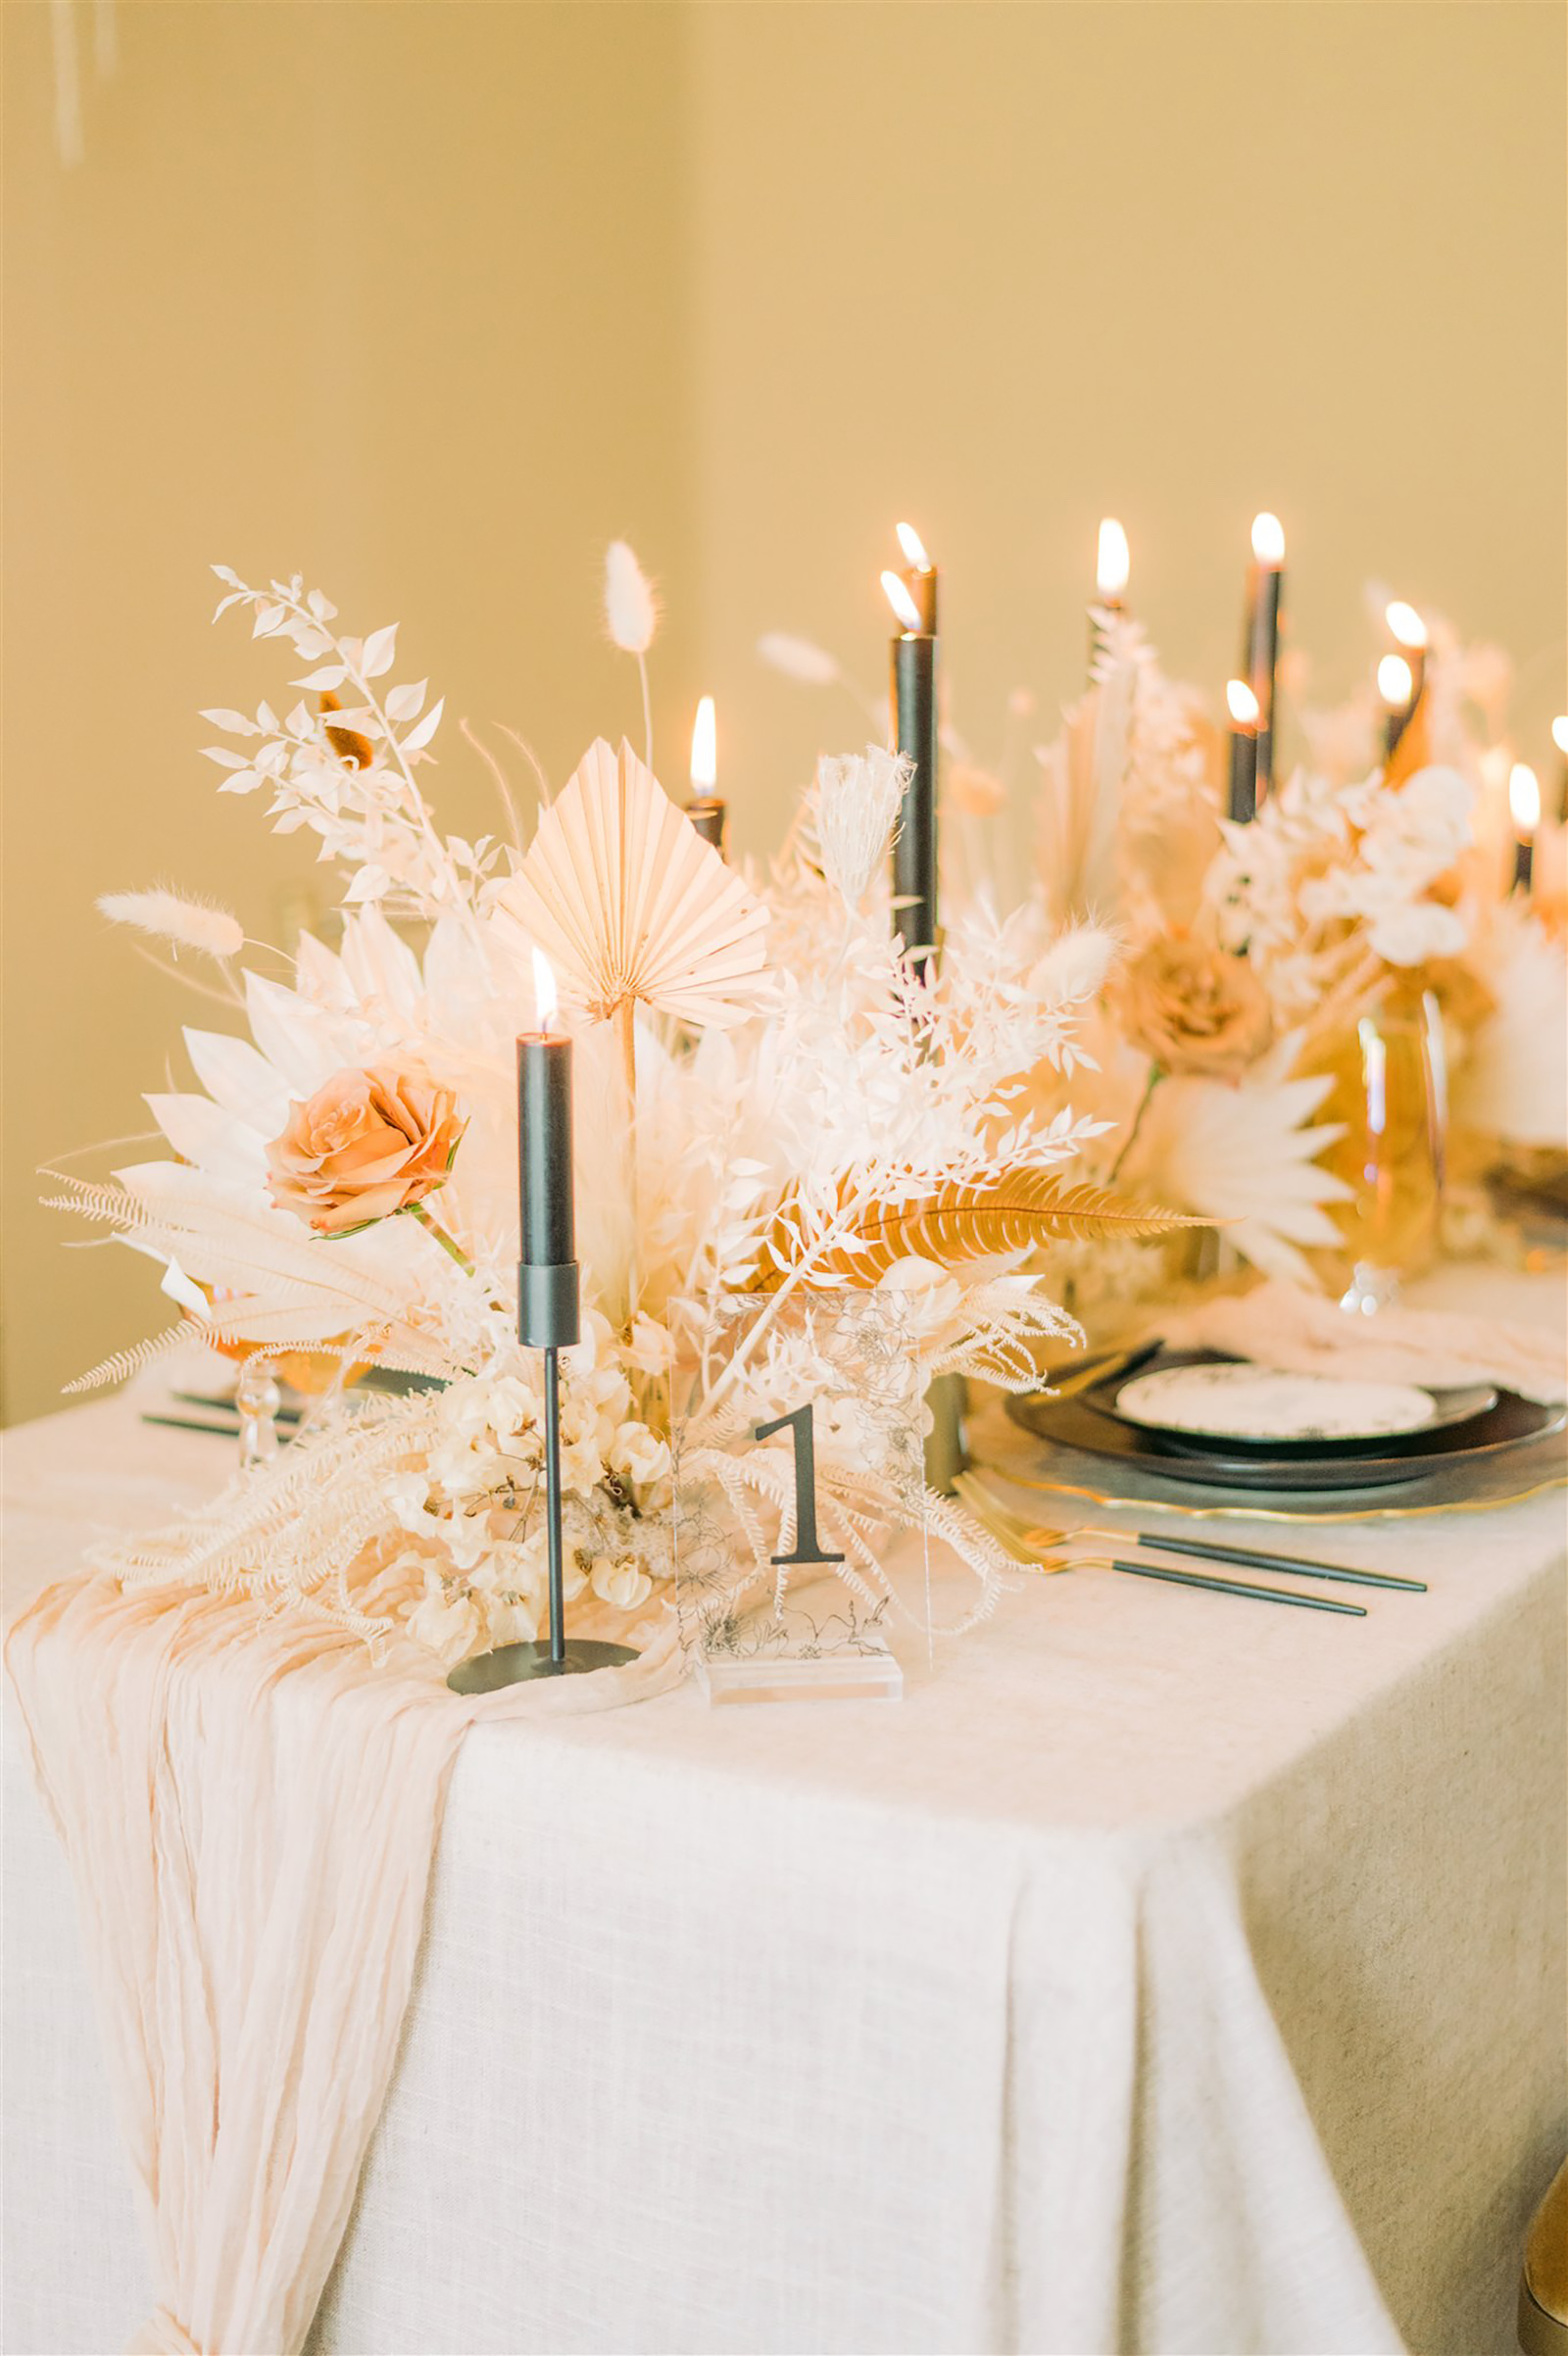 Trendy Modern Boho Wedding Reception Tablescape Decor, Dried Preserved Flower Bouquets, White Feathers, Foliage, Black Taper Candlesticks, Black Chargers, Black and Gold Silverware, White Linens, Custom Stationery | Tampa Bay Wedding Planning, Stationery, Design, Florals John Campbell Weddings | Tabletop Wedding Rentals Kate Ryan Event Rentals | Styled Shoot